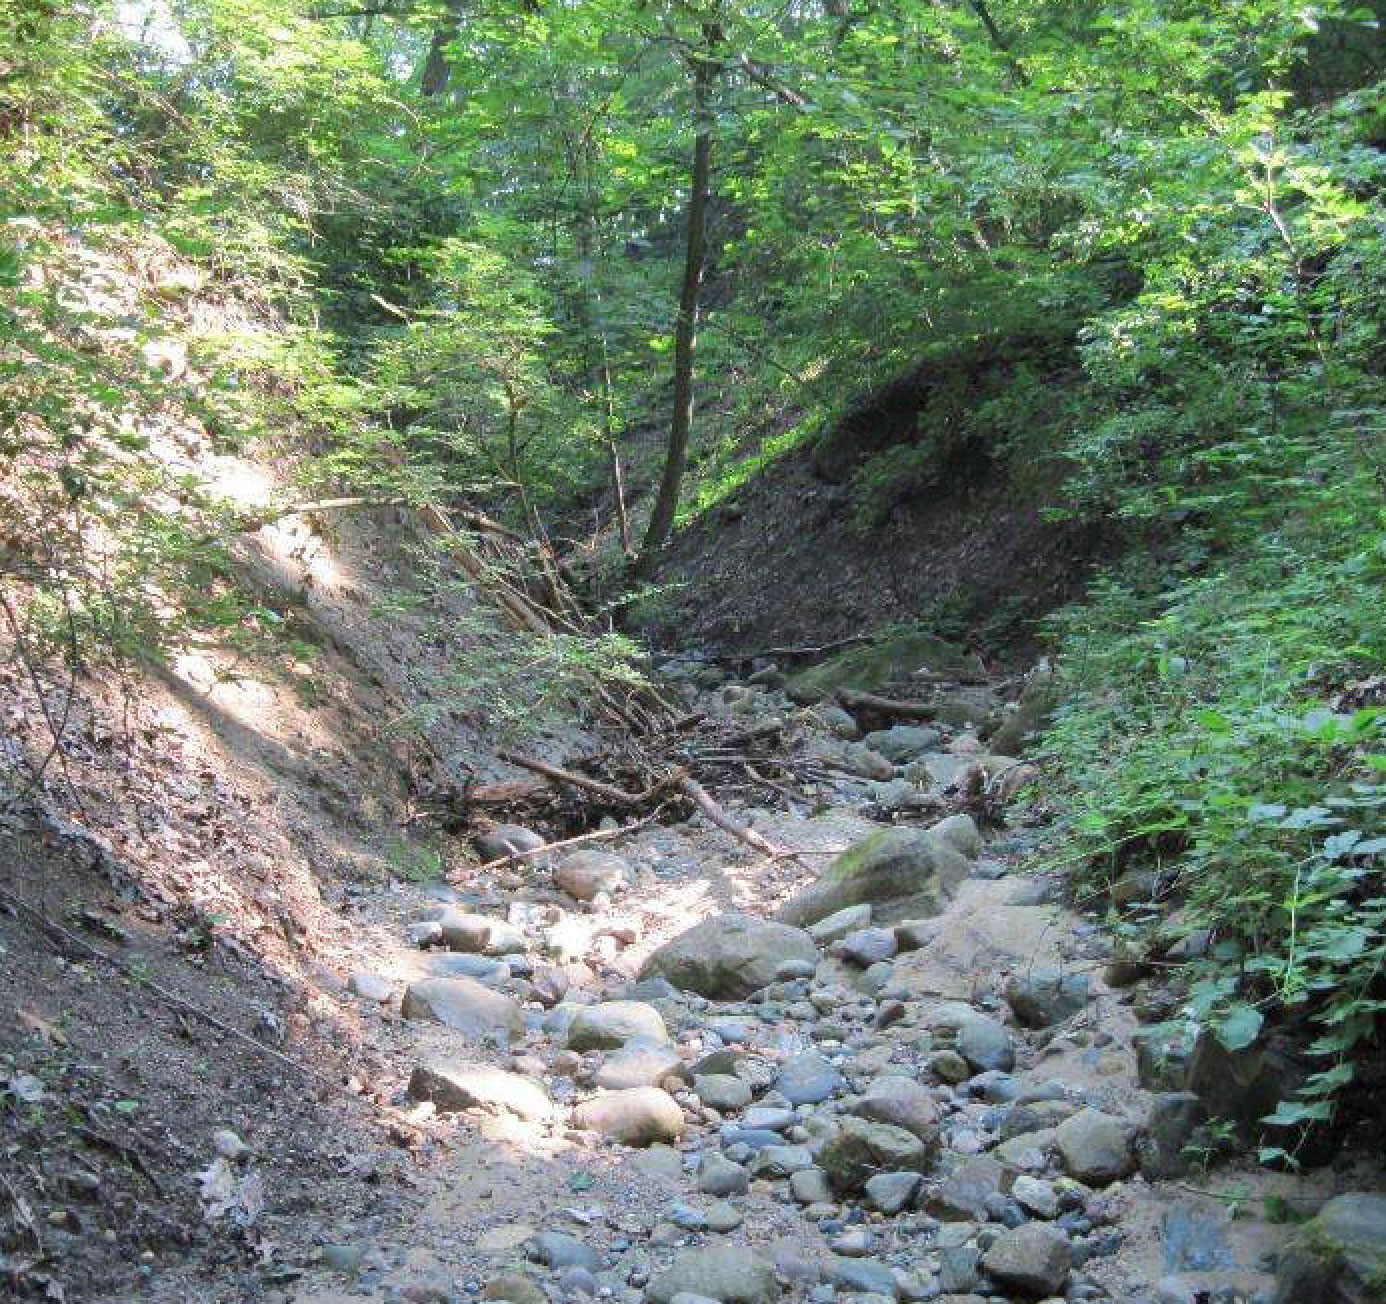 Erosion rocks & invasives in Glen